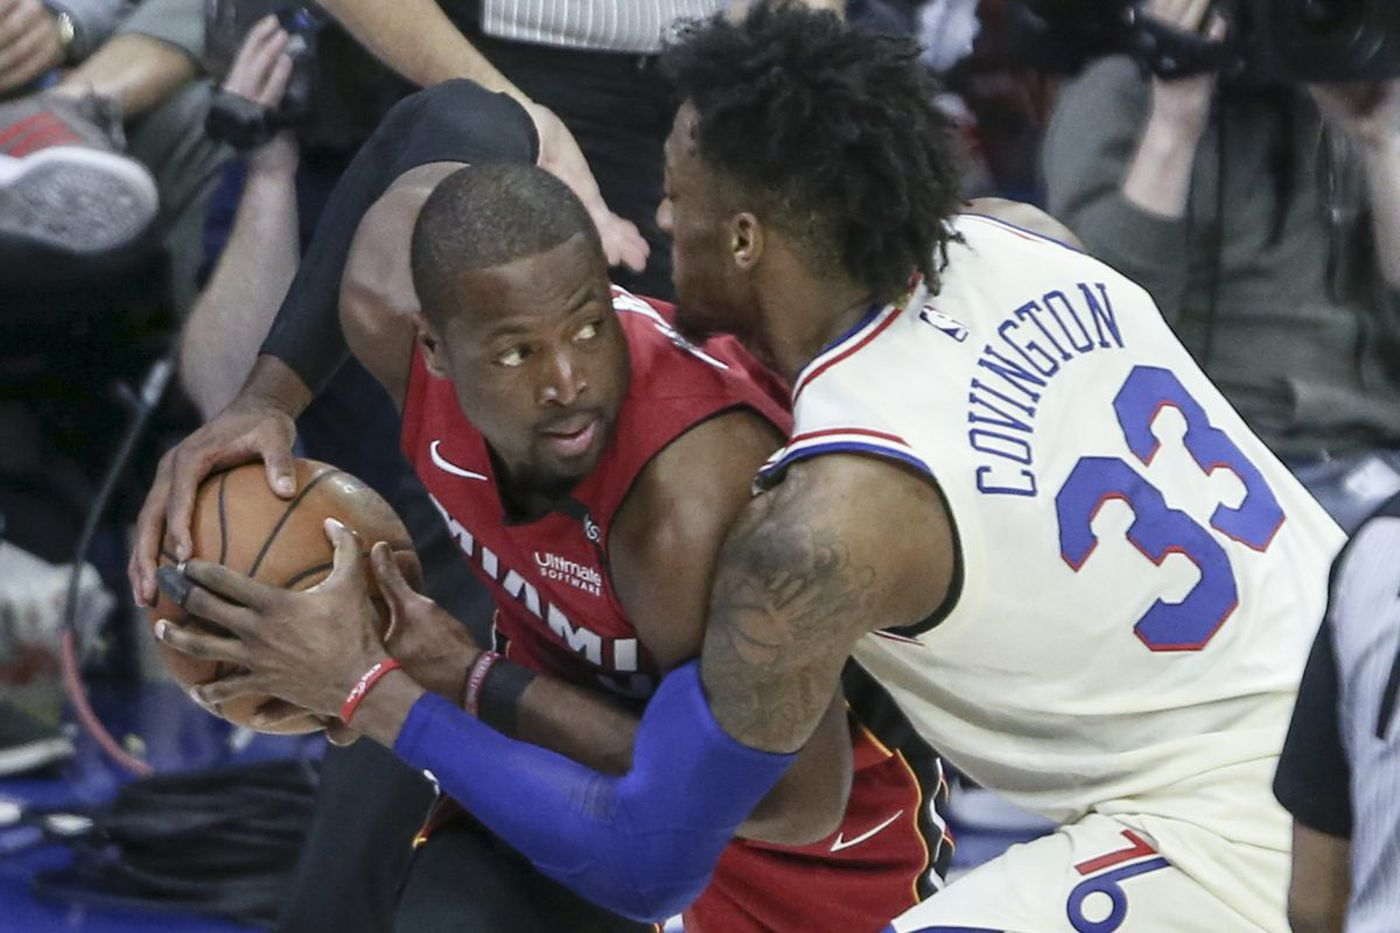 Dwyane Wade scores 28 points as Heat win, 113-103, to even NBA playoff series with Sixers